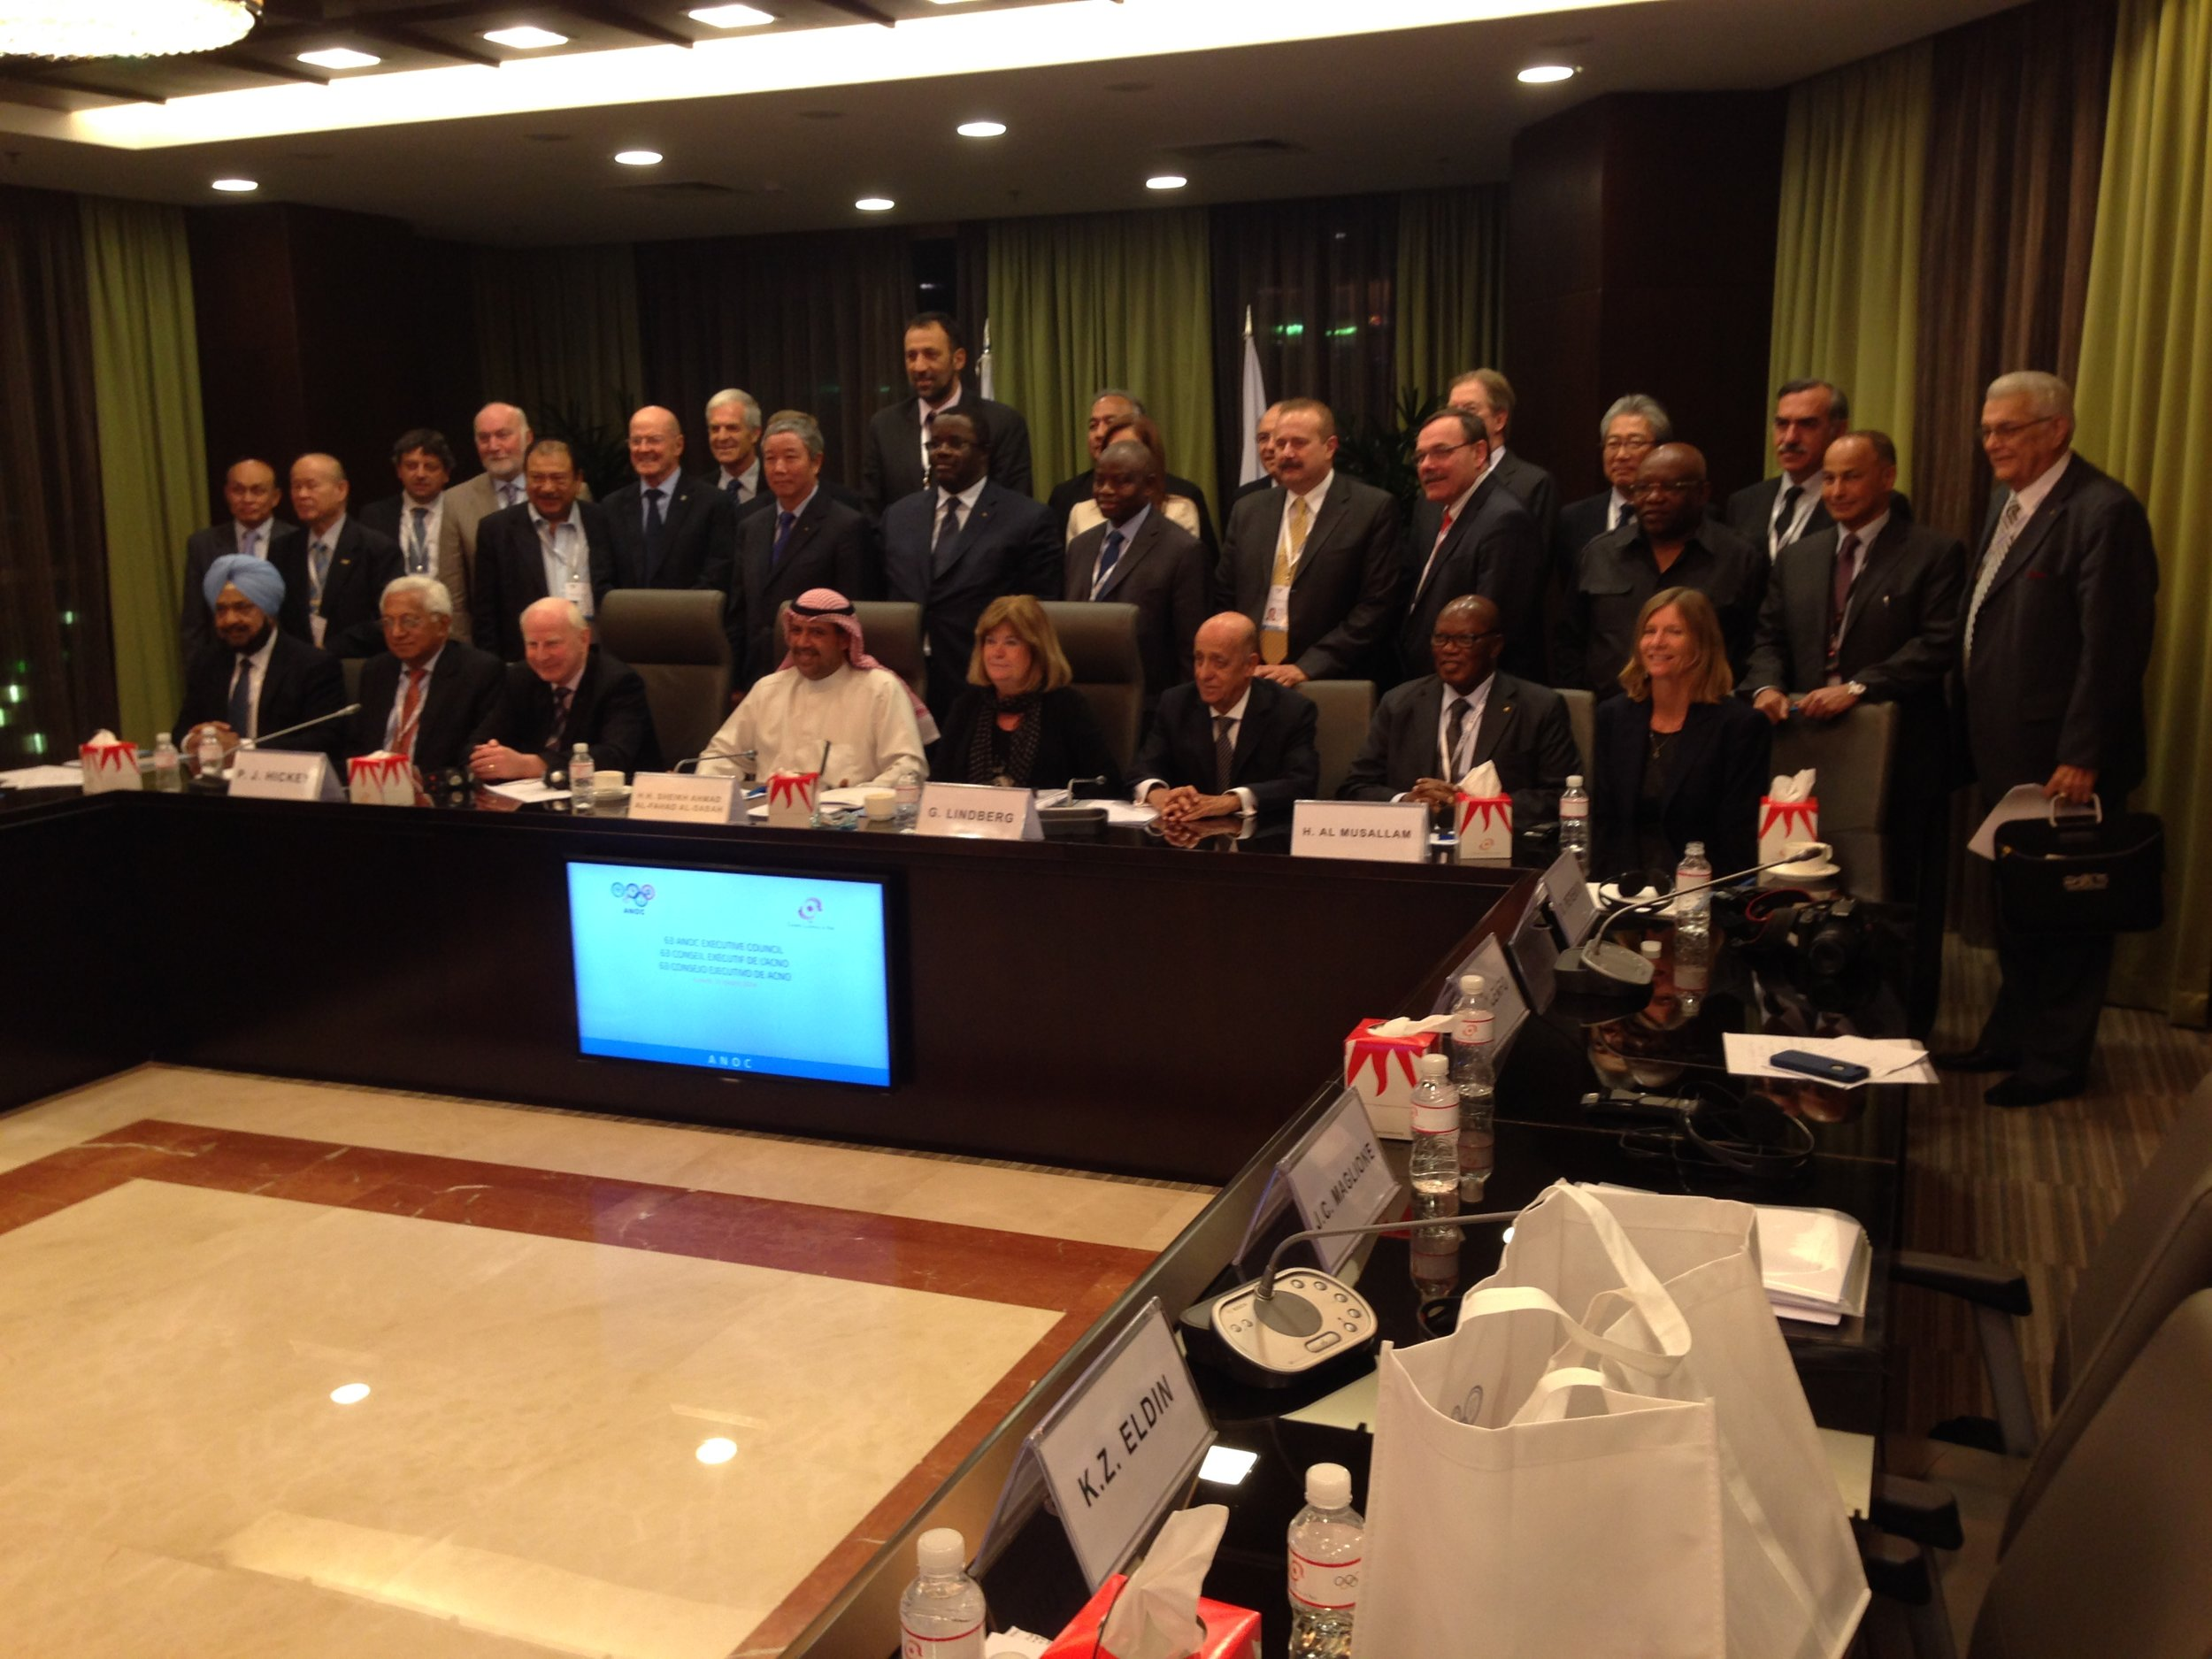 ANOC dignitaries, with Sheikh Ahmad at the center, before Monday's news conference